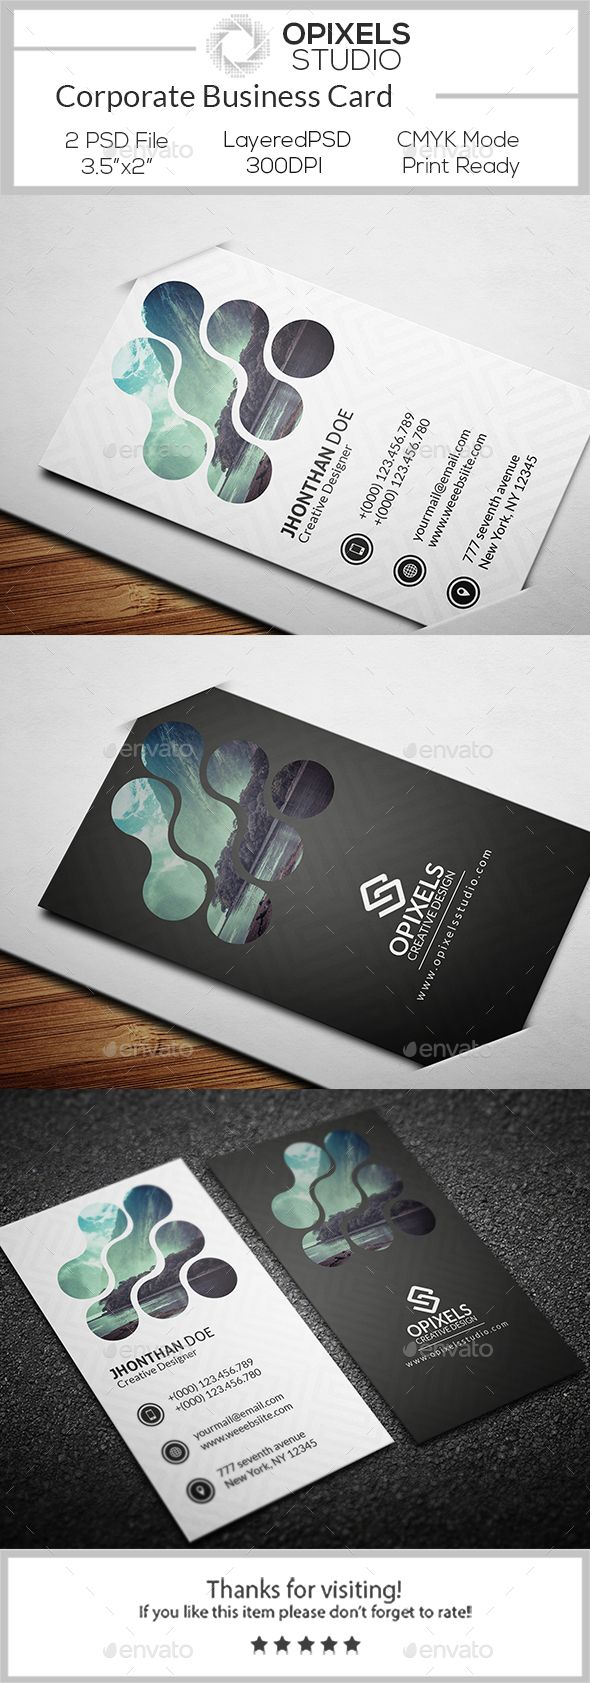 176 Best Business Card Design Images On Pinterest Business Card